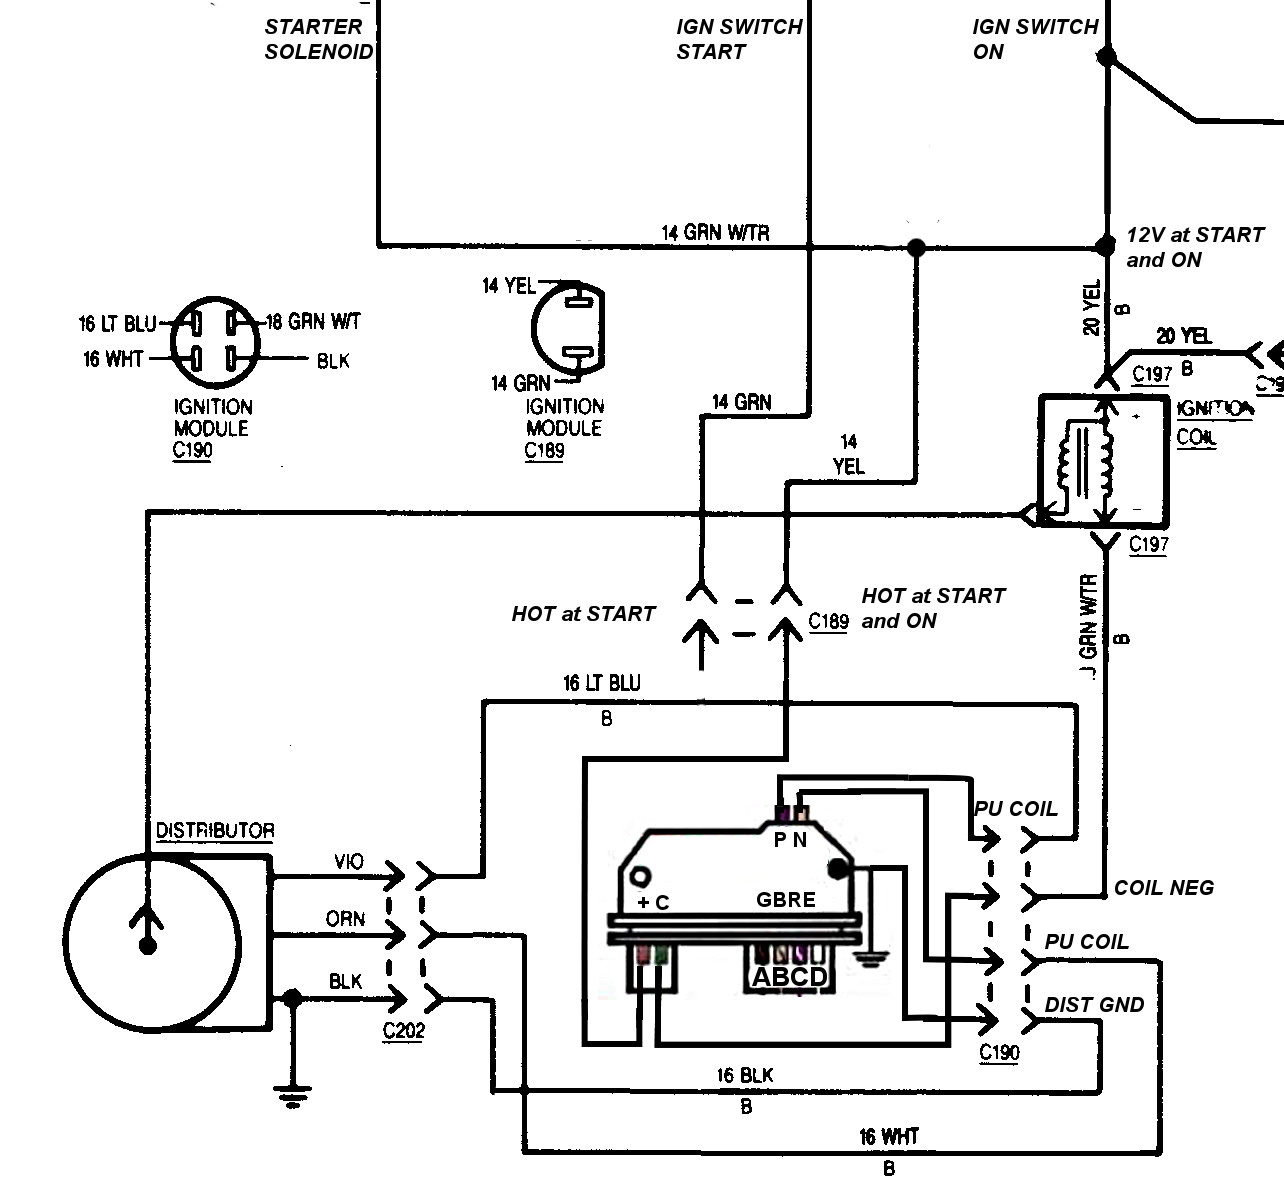 Gm Hei Distributor Wiring Diagram 65 88 - Technical Diagrams Hei Distributor Wiring Diagram on